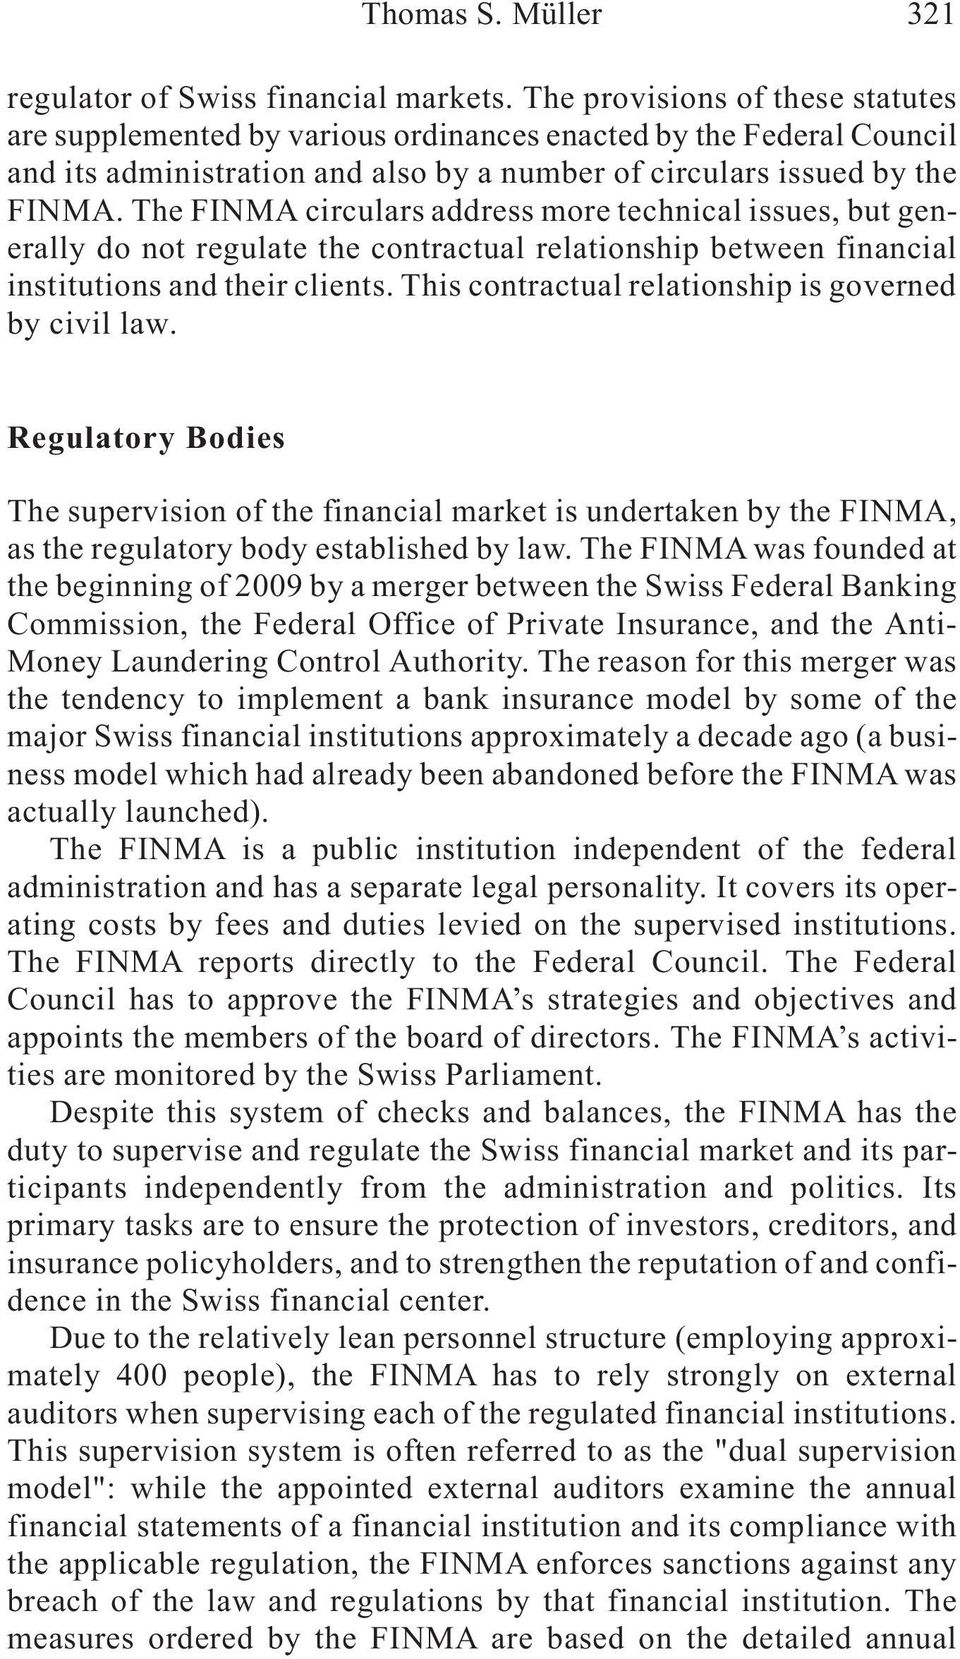 The FINMA circulars address more technical issues, but generally do not regulate the contractual relationship between financial institutions and their clients.